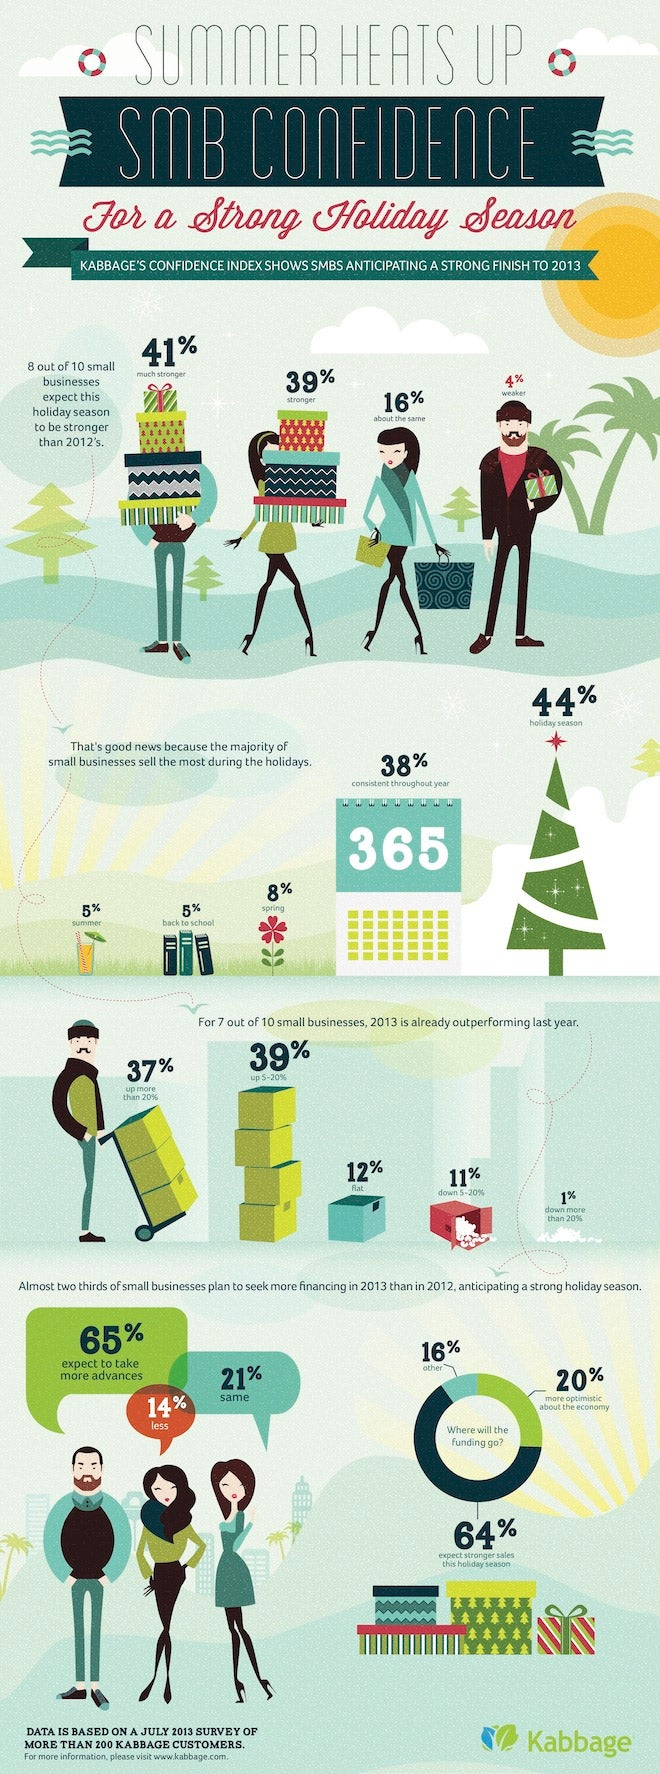 Small Businesses Gearing Up for a Strong Holiday Shopping Season (Infographic)